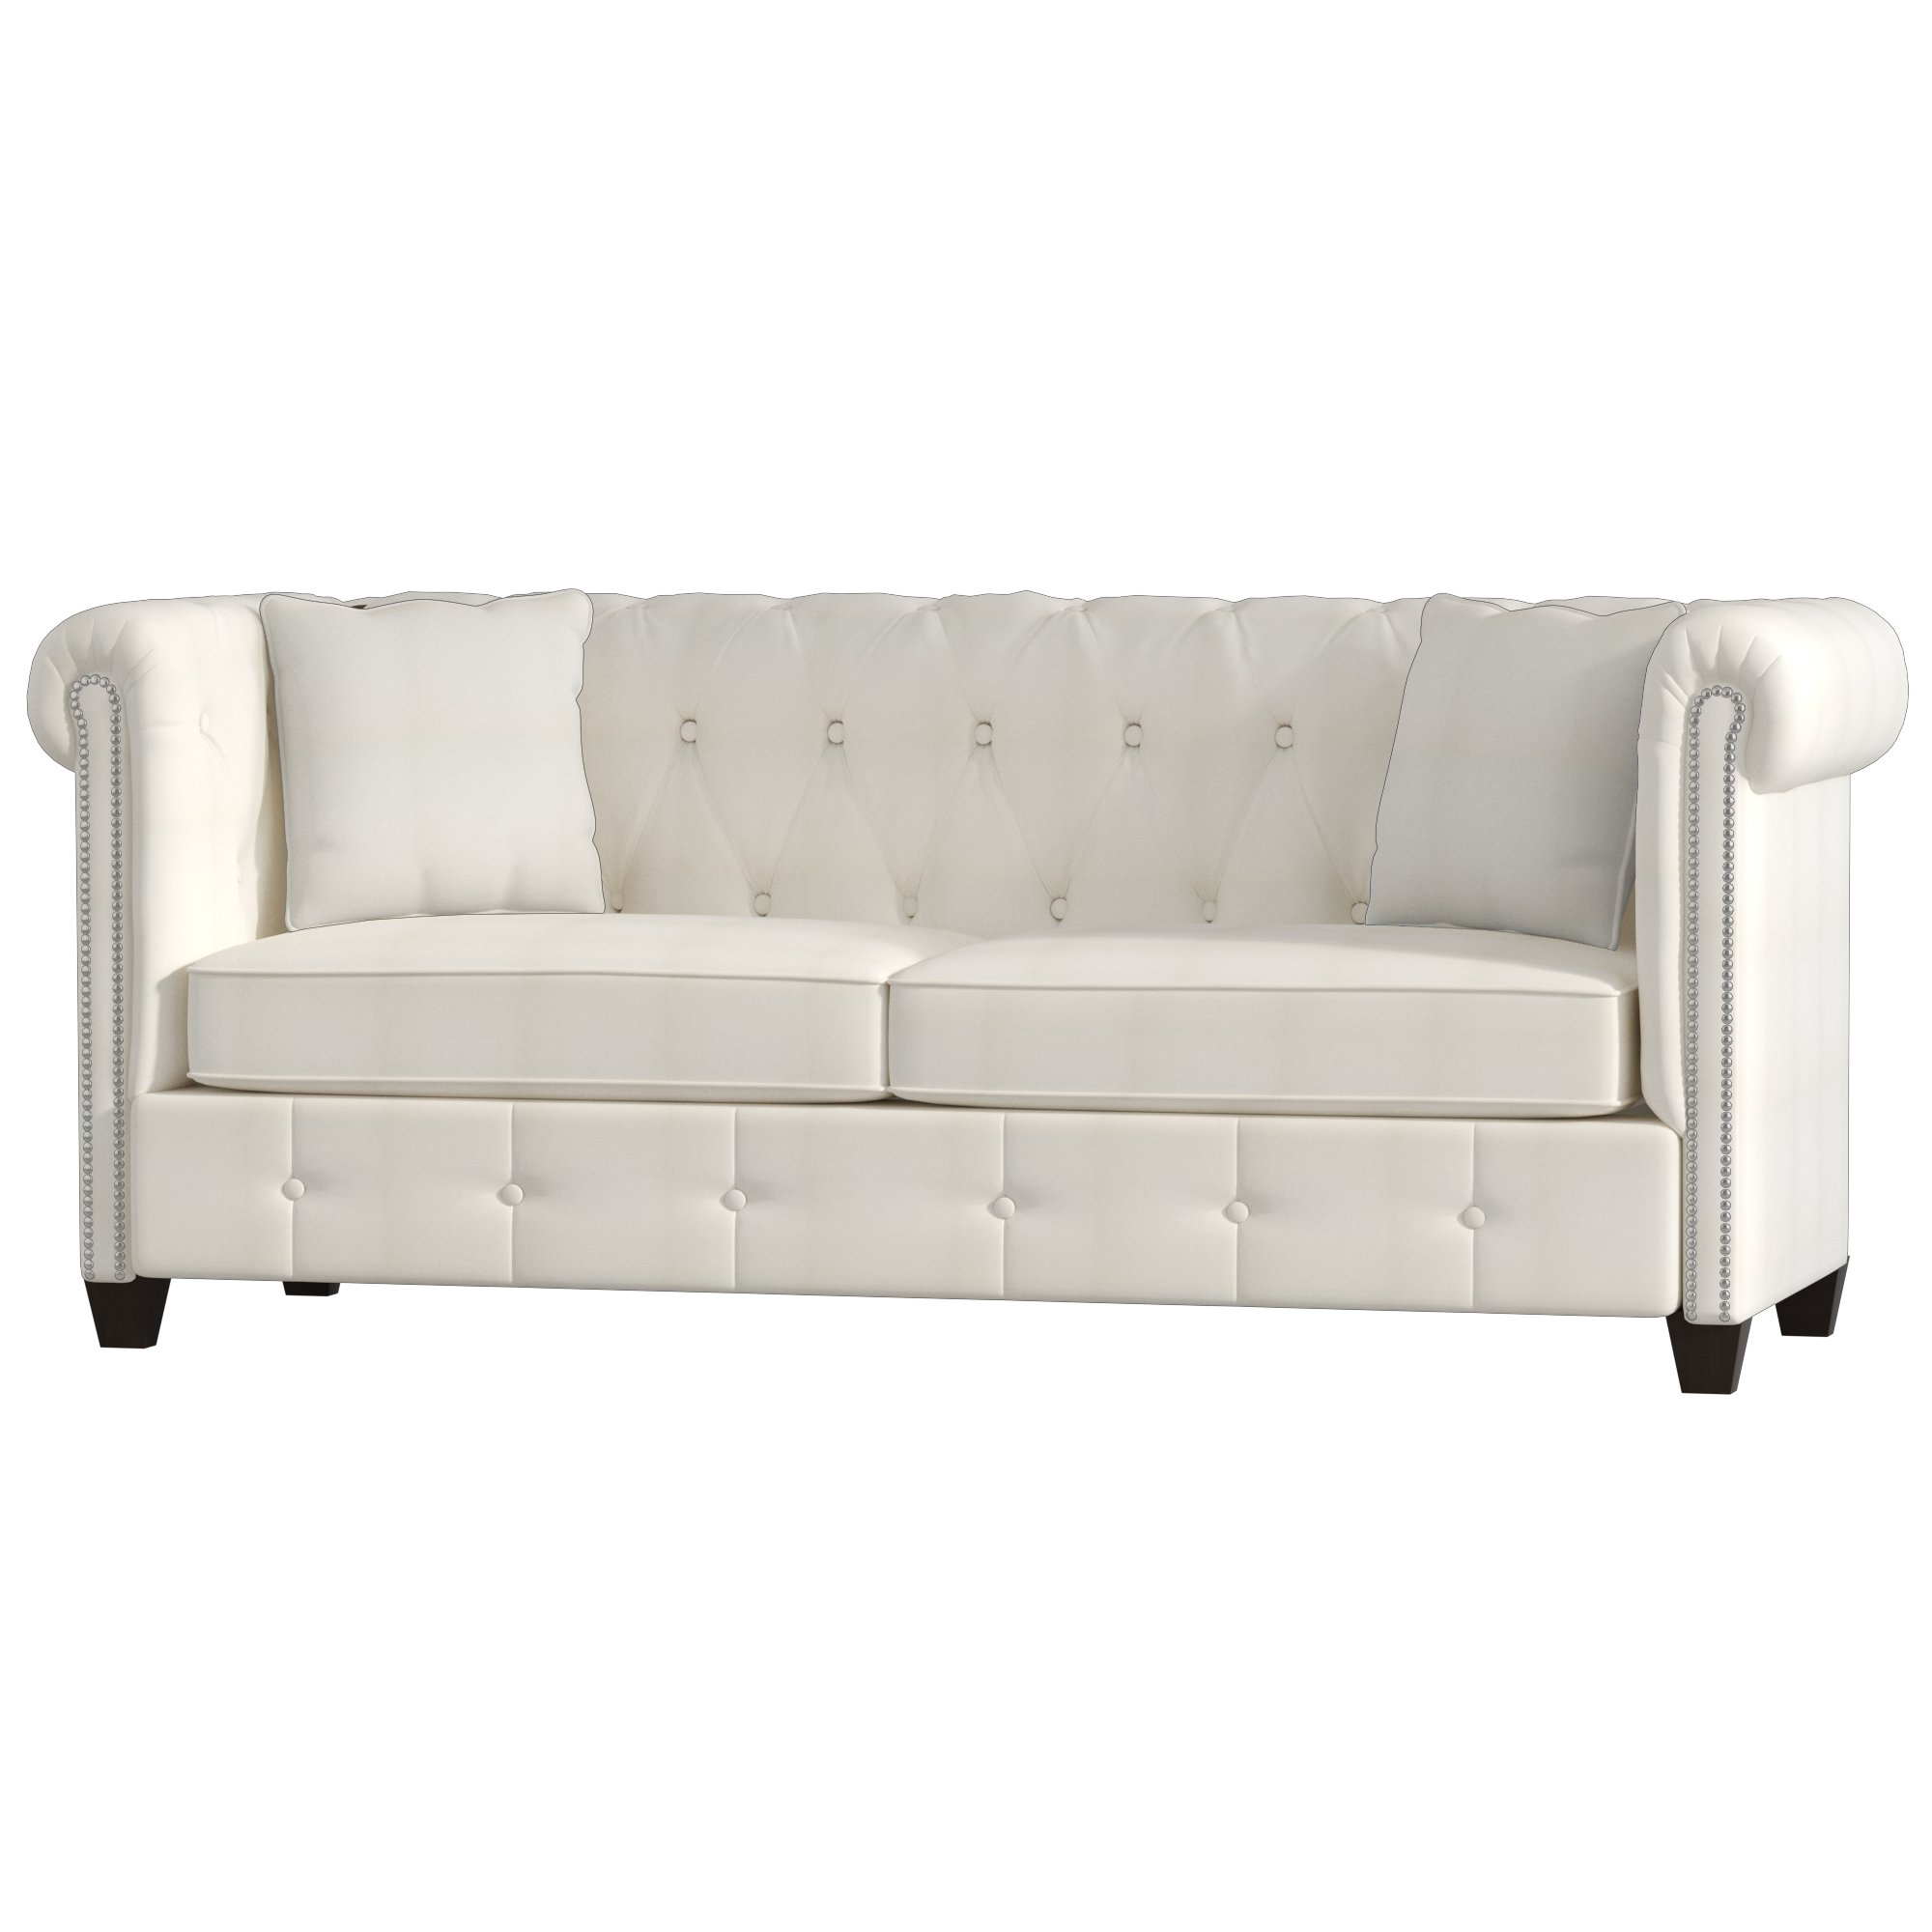 Josephine Sofa Chairs Throughout Most Recently Released Wayfair Custom Upholstery™ Josephine Tufted Chesterfield Sofa (View 11 of 20)